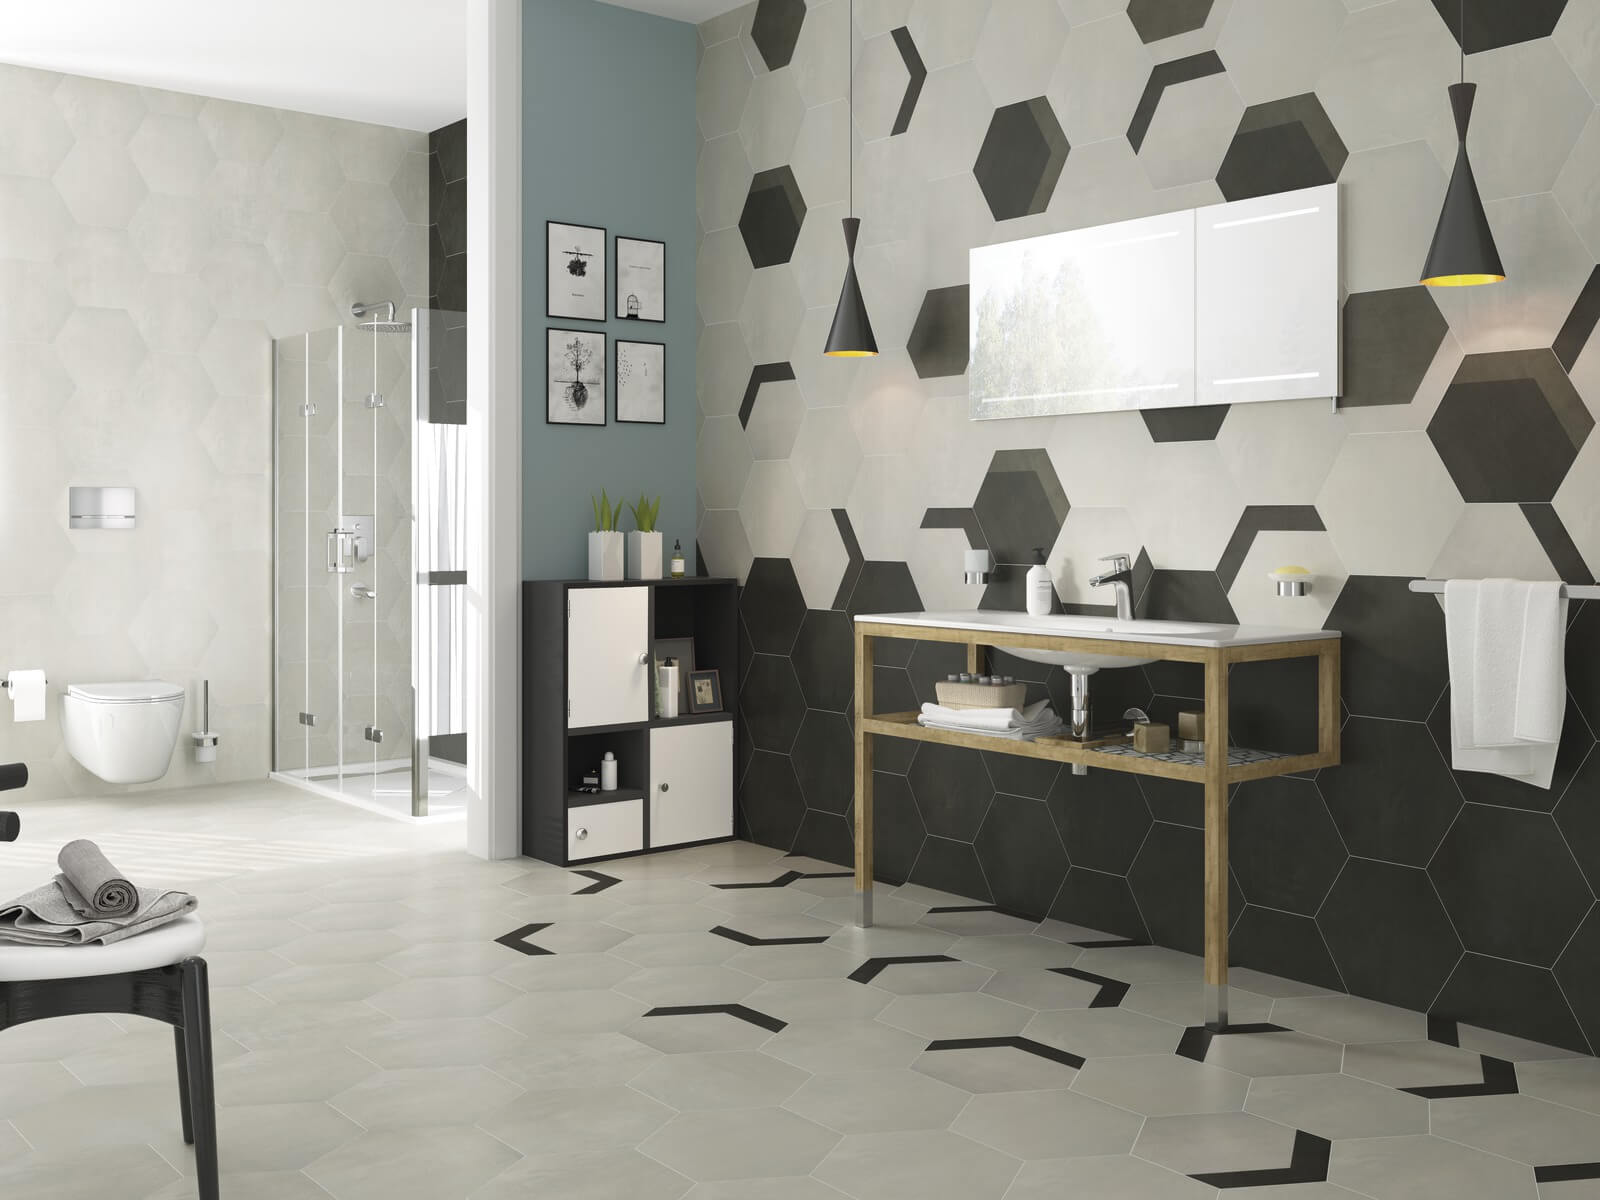 Factors to Consider When Picking a Washbasin For Your Bathroom